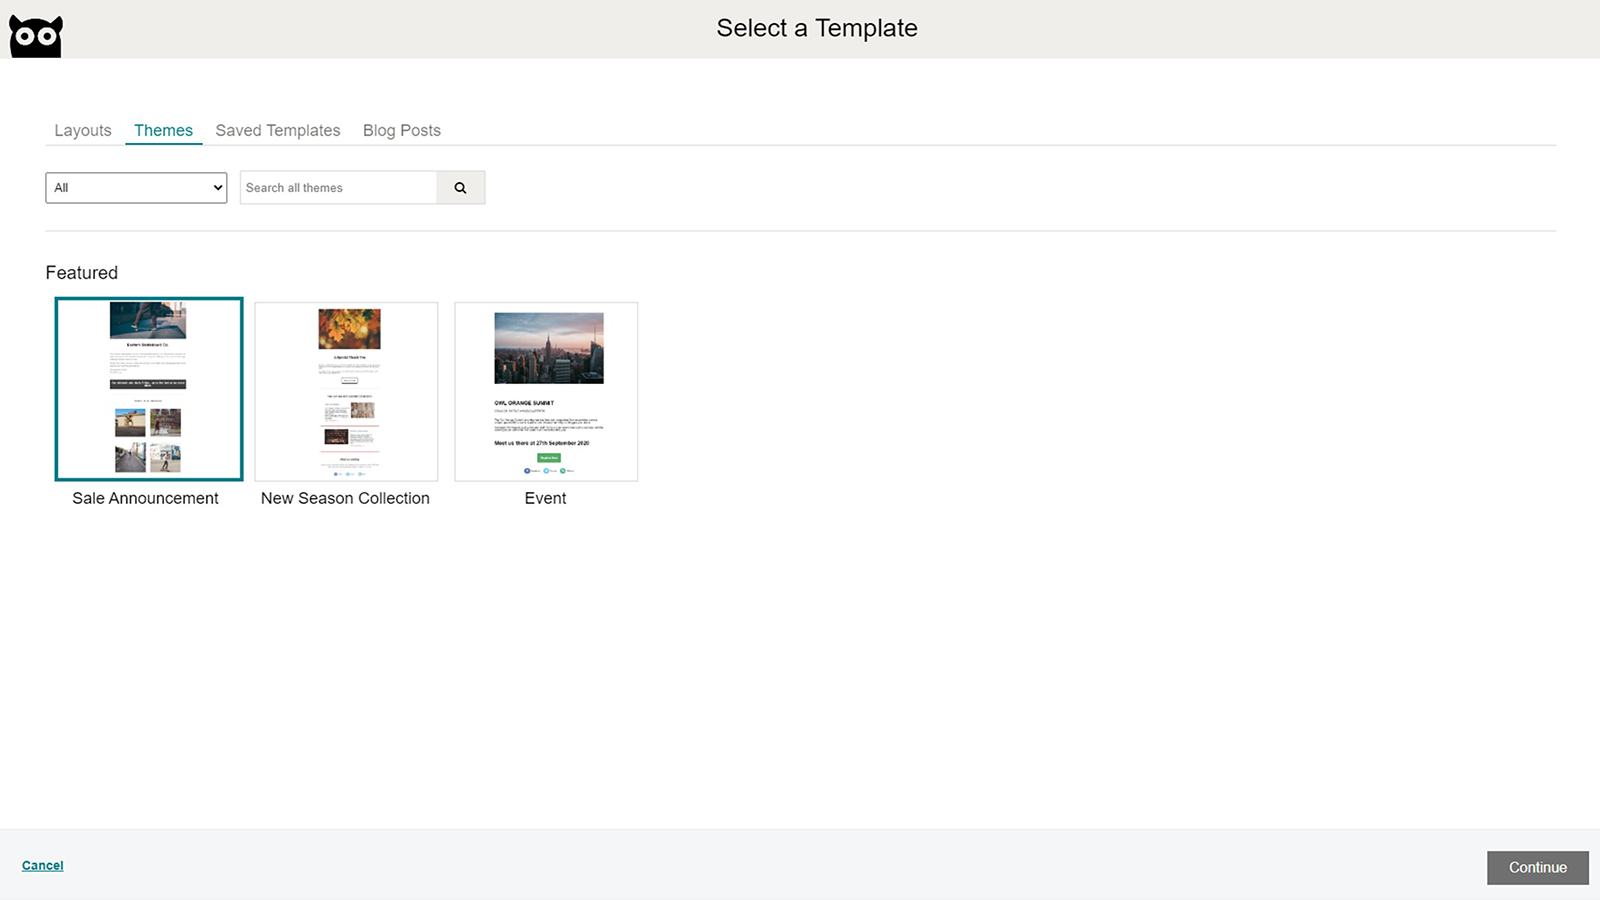 Select Template (Themes)